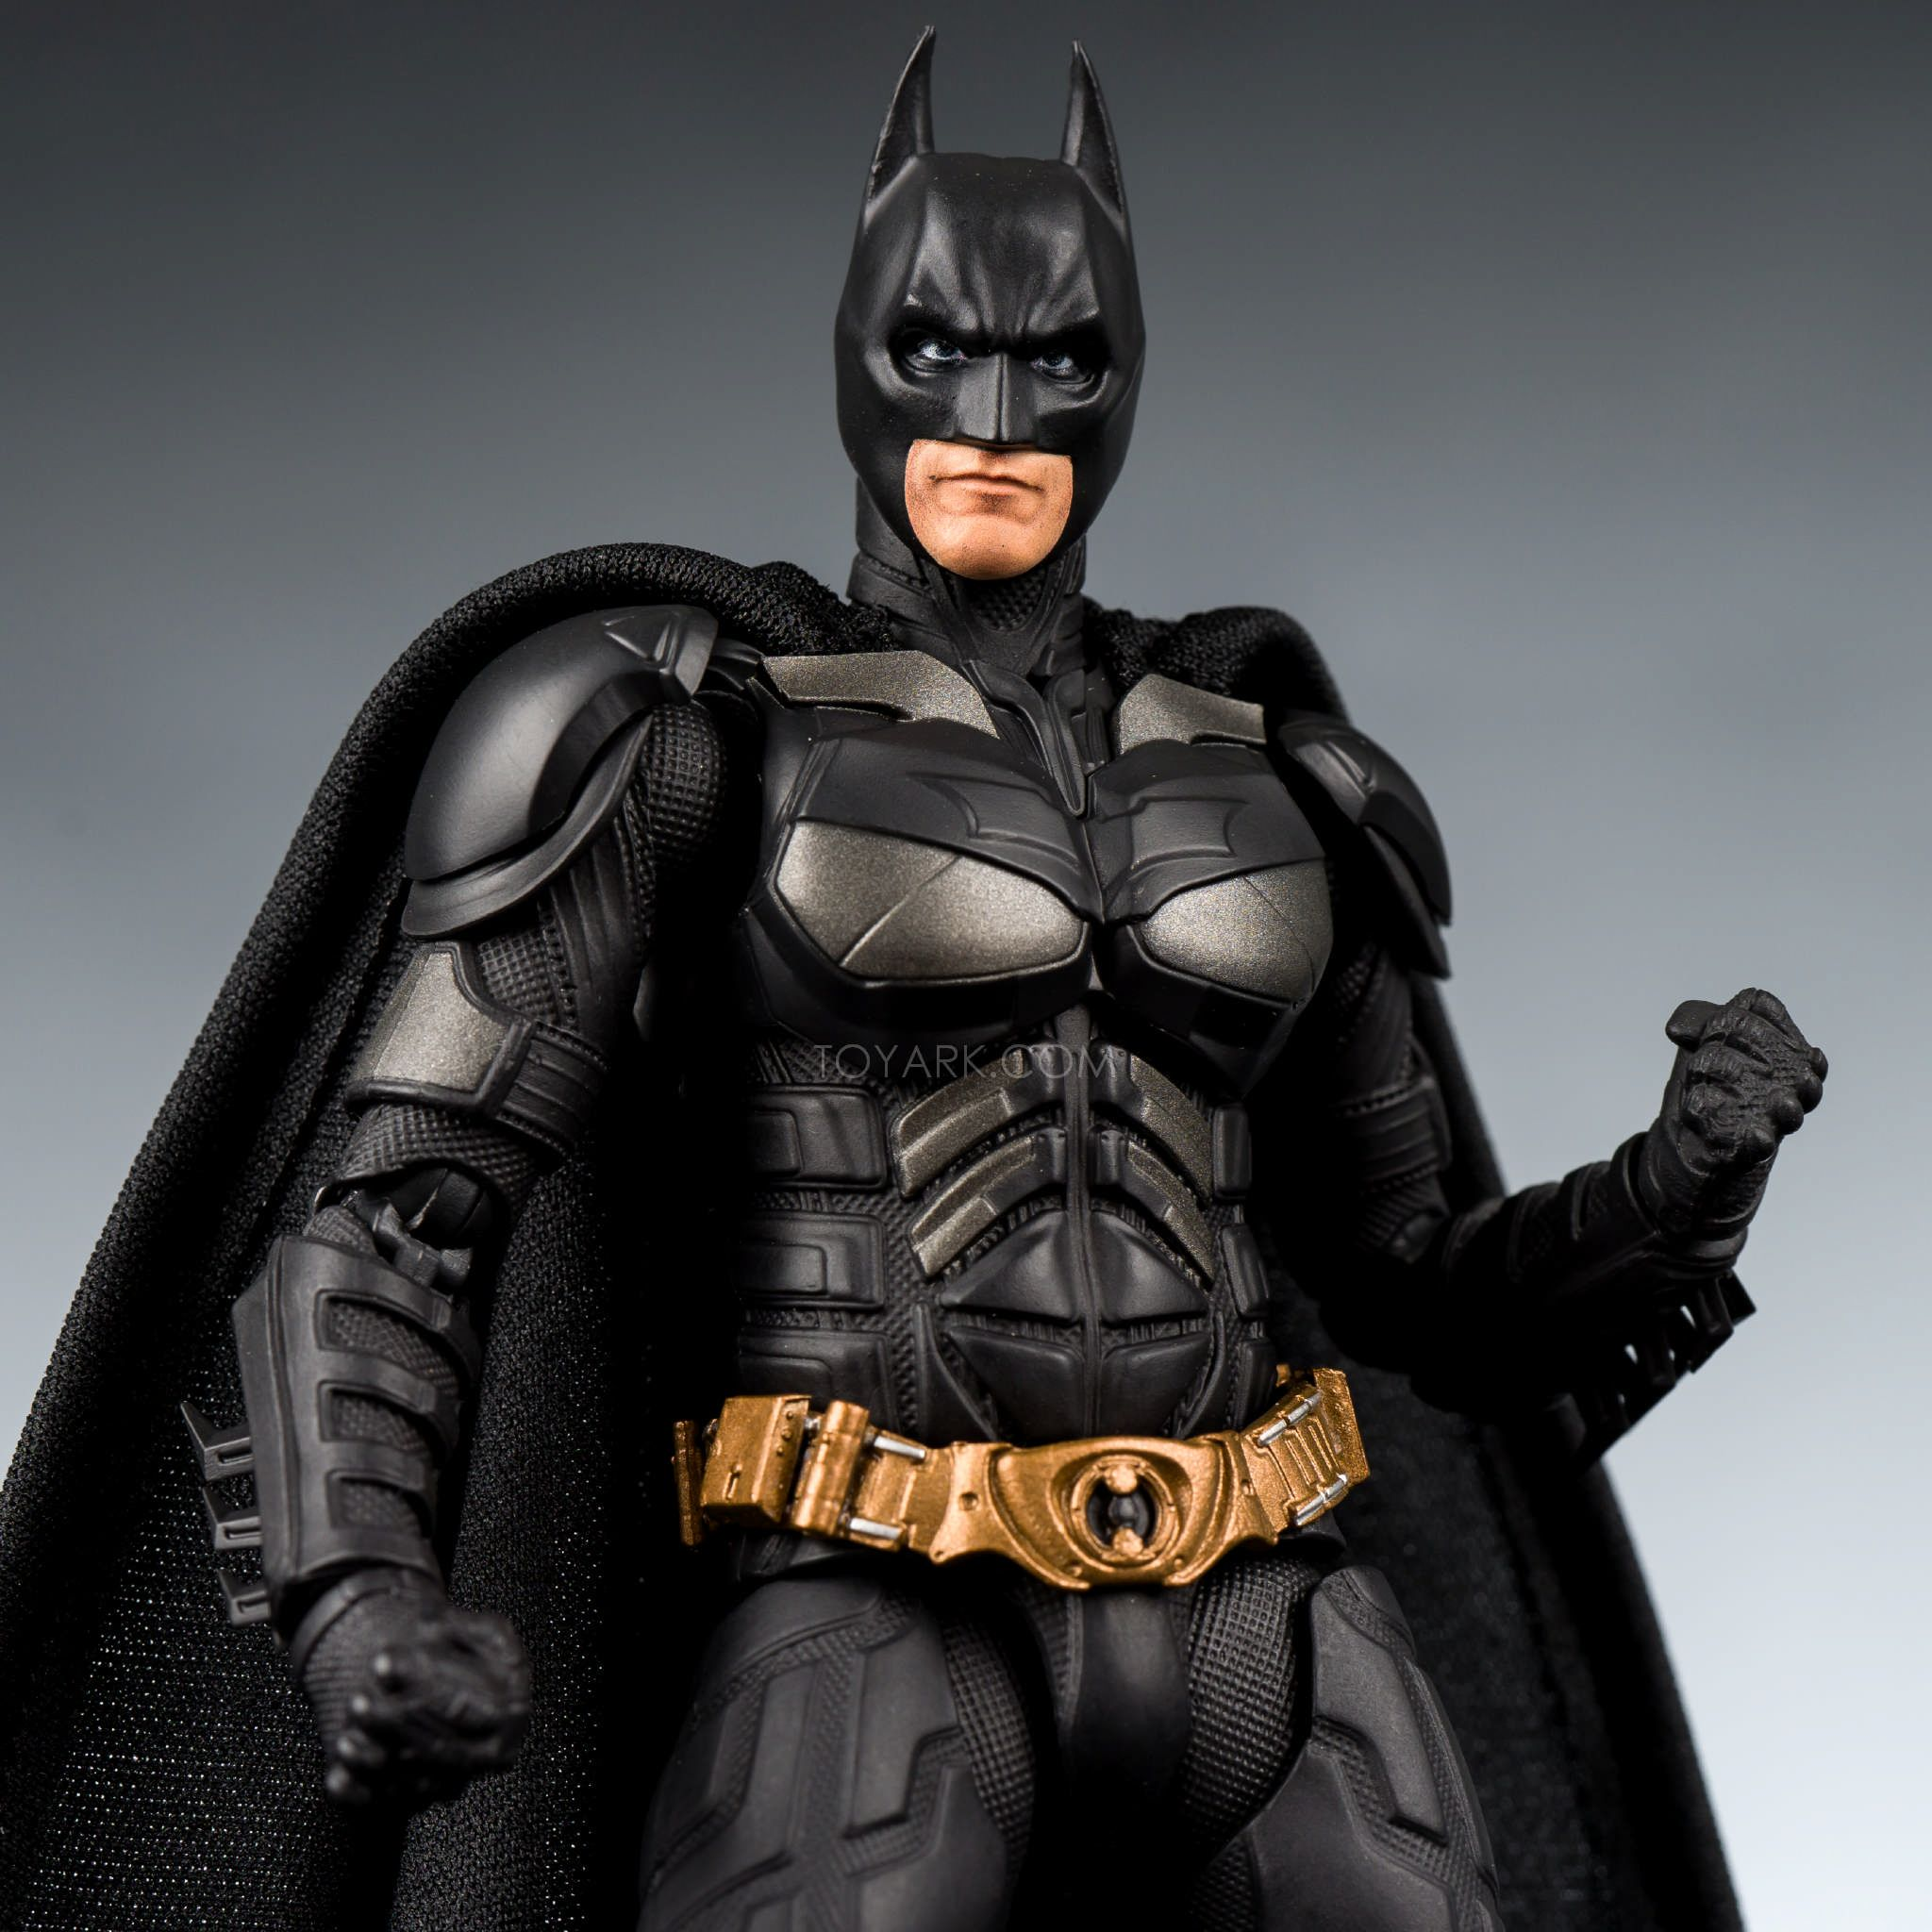 Sh figuarts the dark knight batman action figures collectibles sh figuarts the dark knight batman voltagebd Image collections